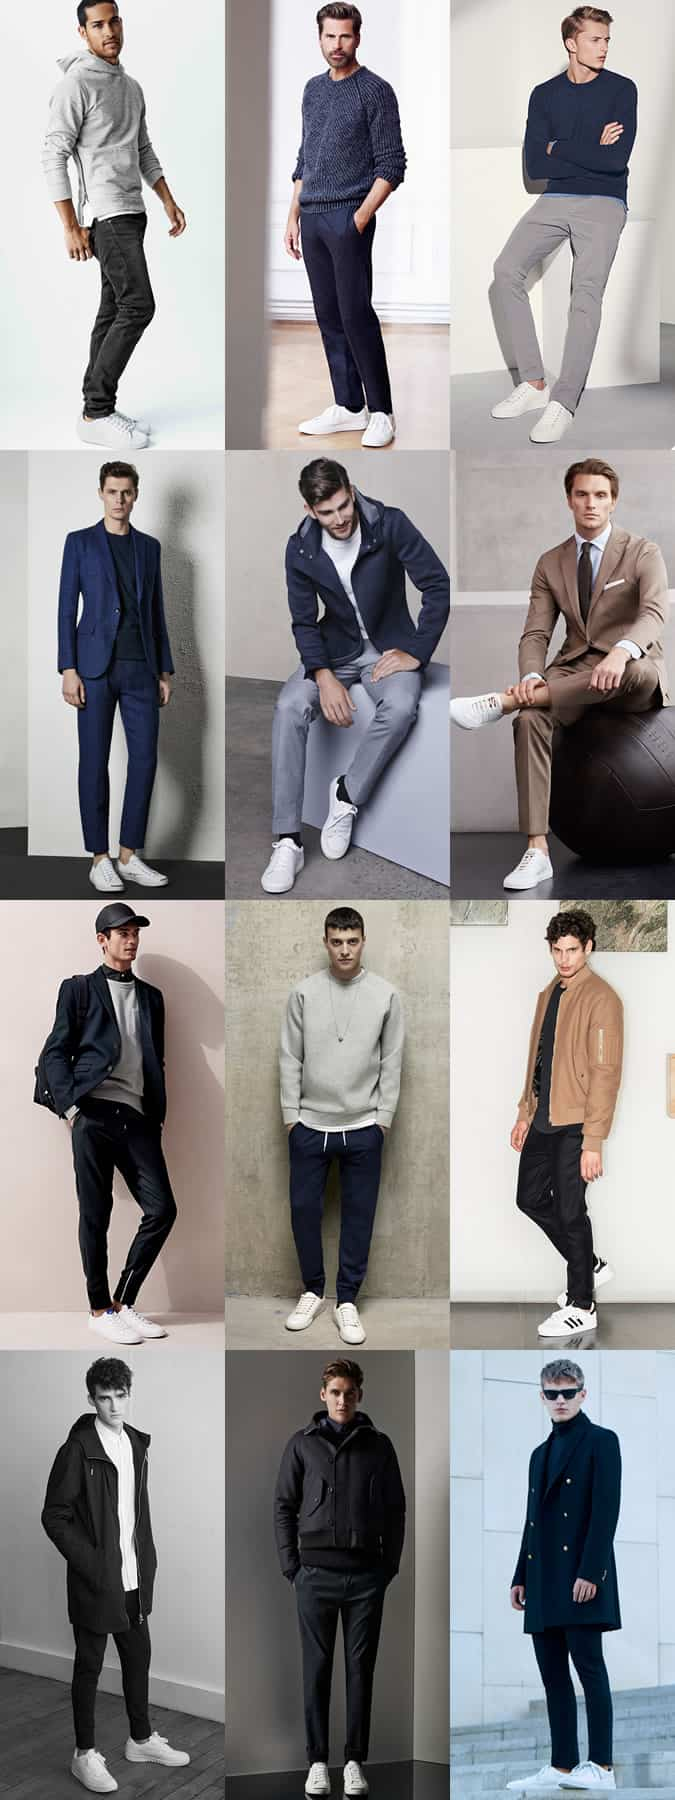 Men's Neutral Outfits With White Trainers Lookbook Inspiration